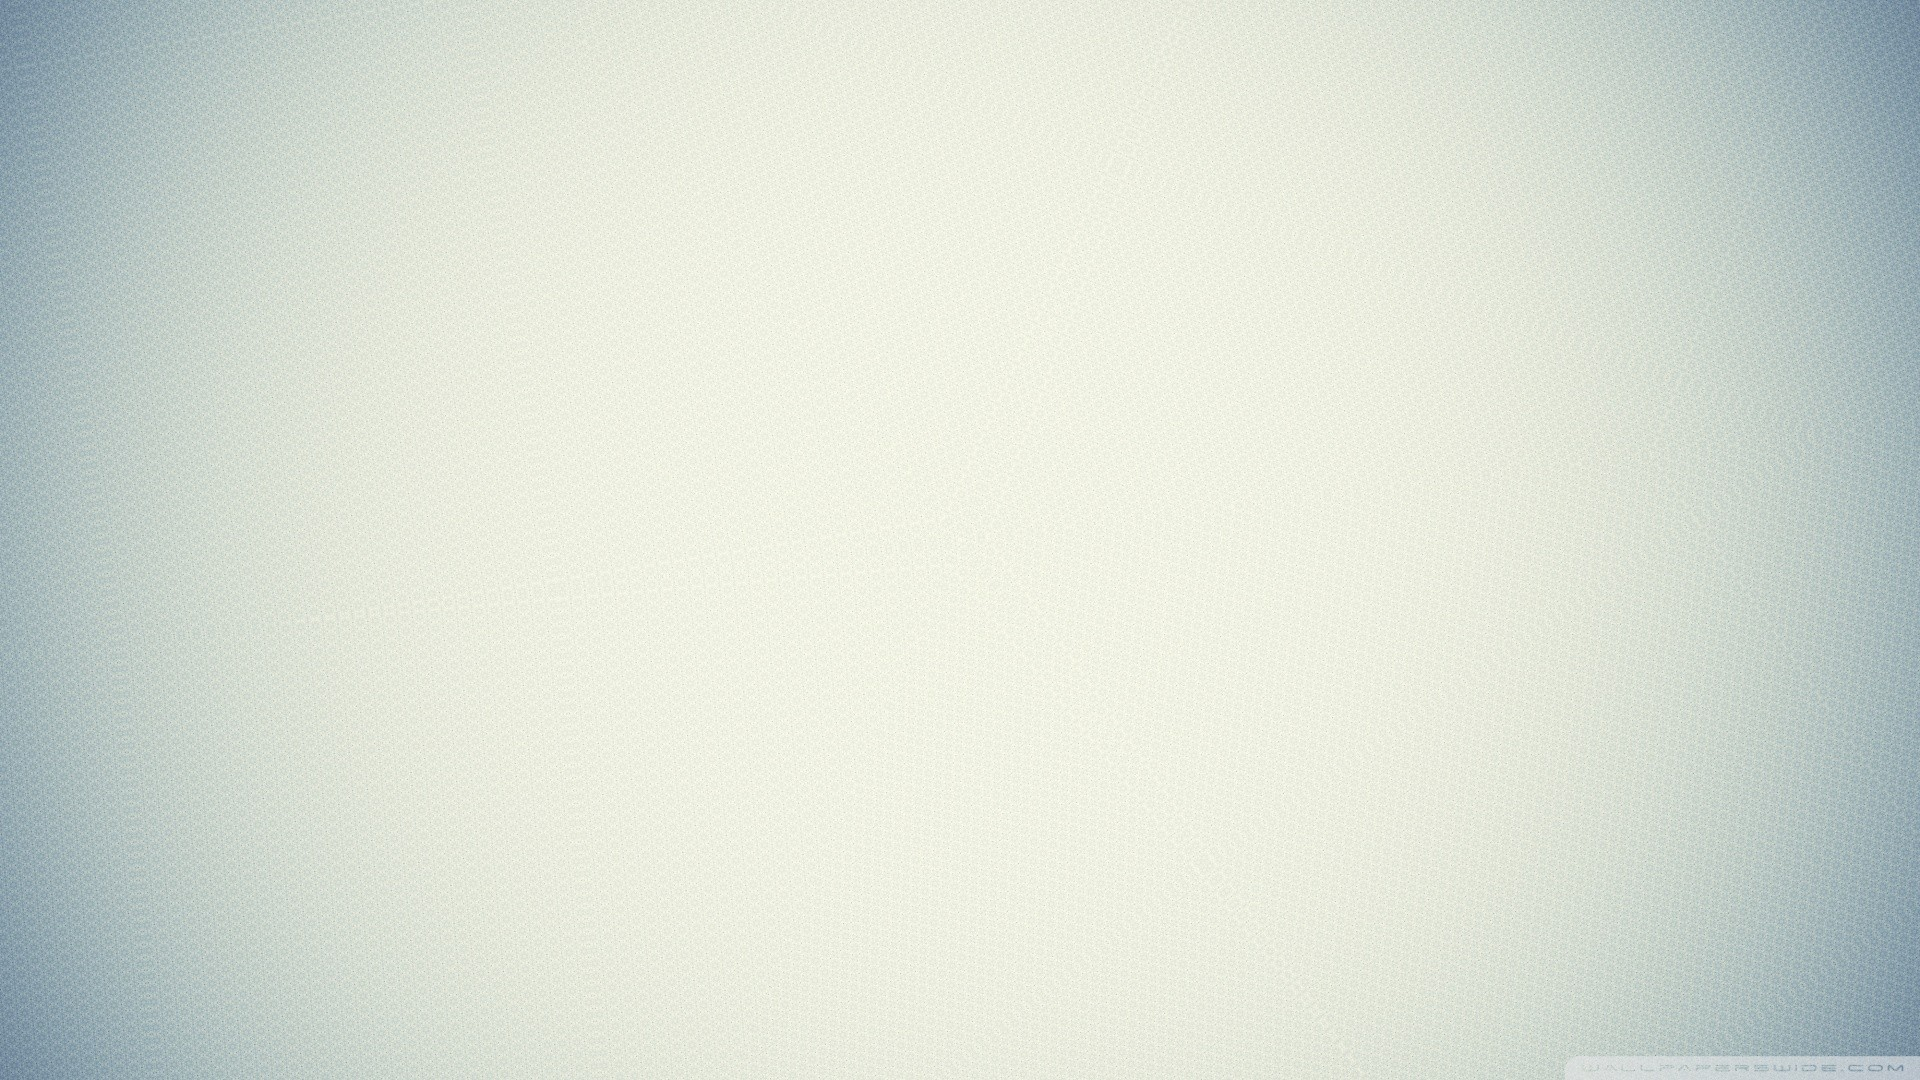 Light Grey background ·① Download free awesome HD ...